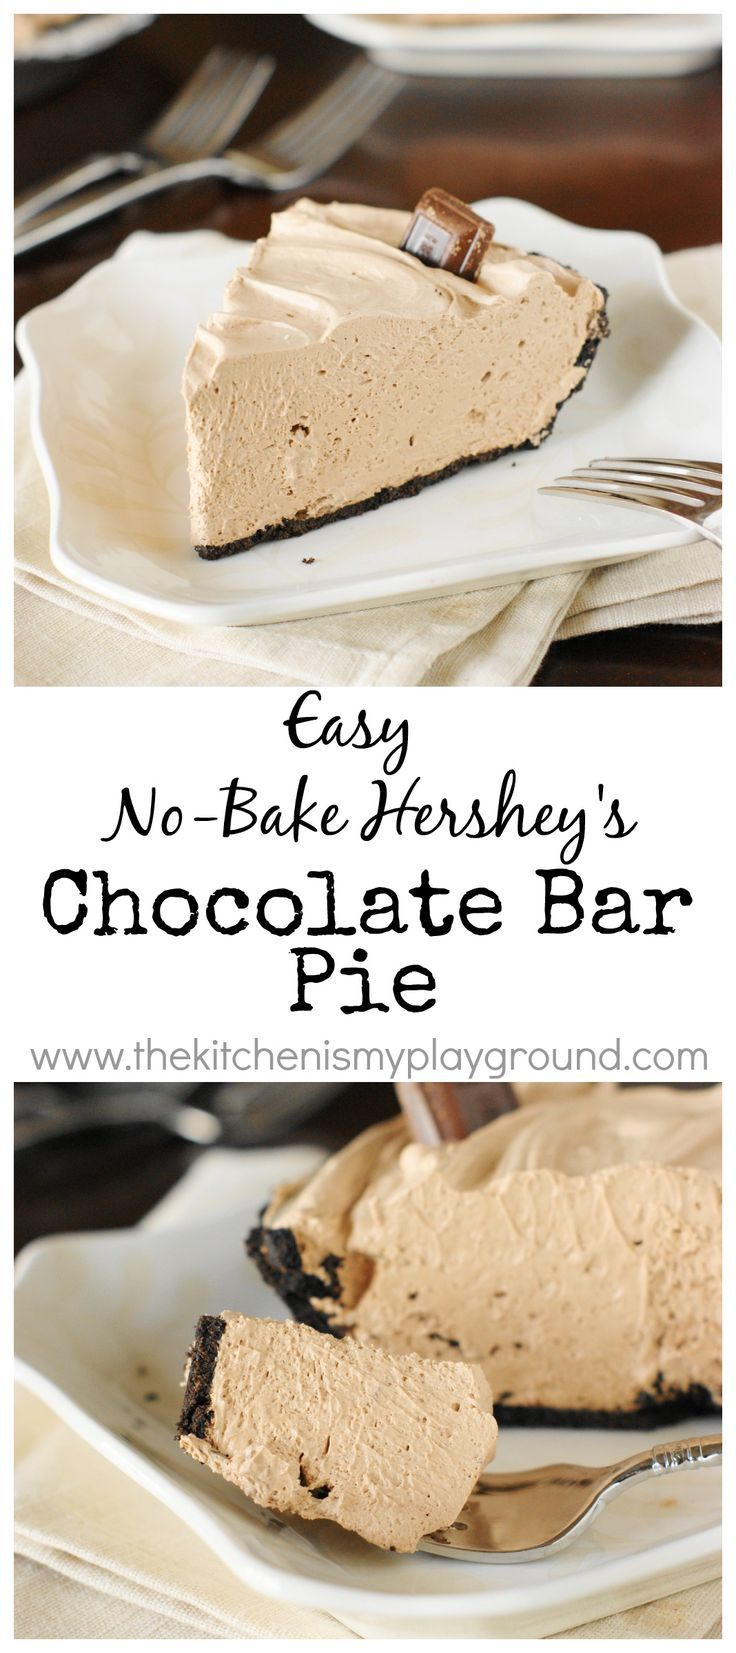 No-Bake Hershey Chocolate Bar Pie.  You won't believe a pie this good can be this easy!   www.thekitchenismyplayground.com